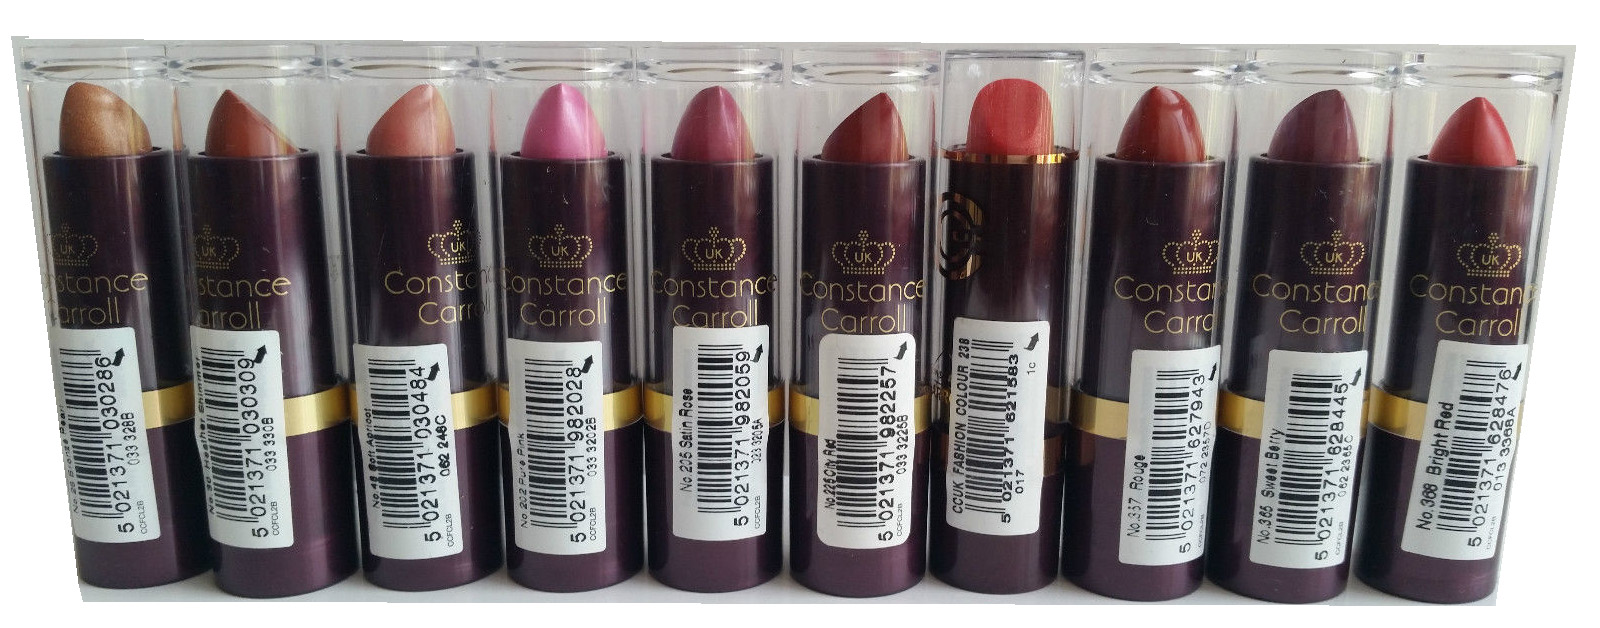 Constance Carroll UK Fashion Colour Lipstick - 66 Healthy Shimmer